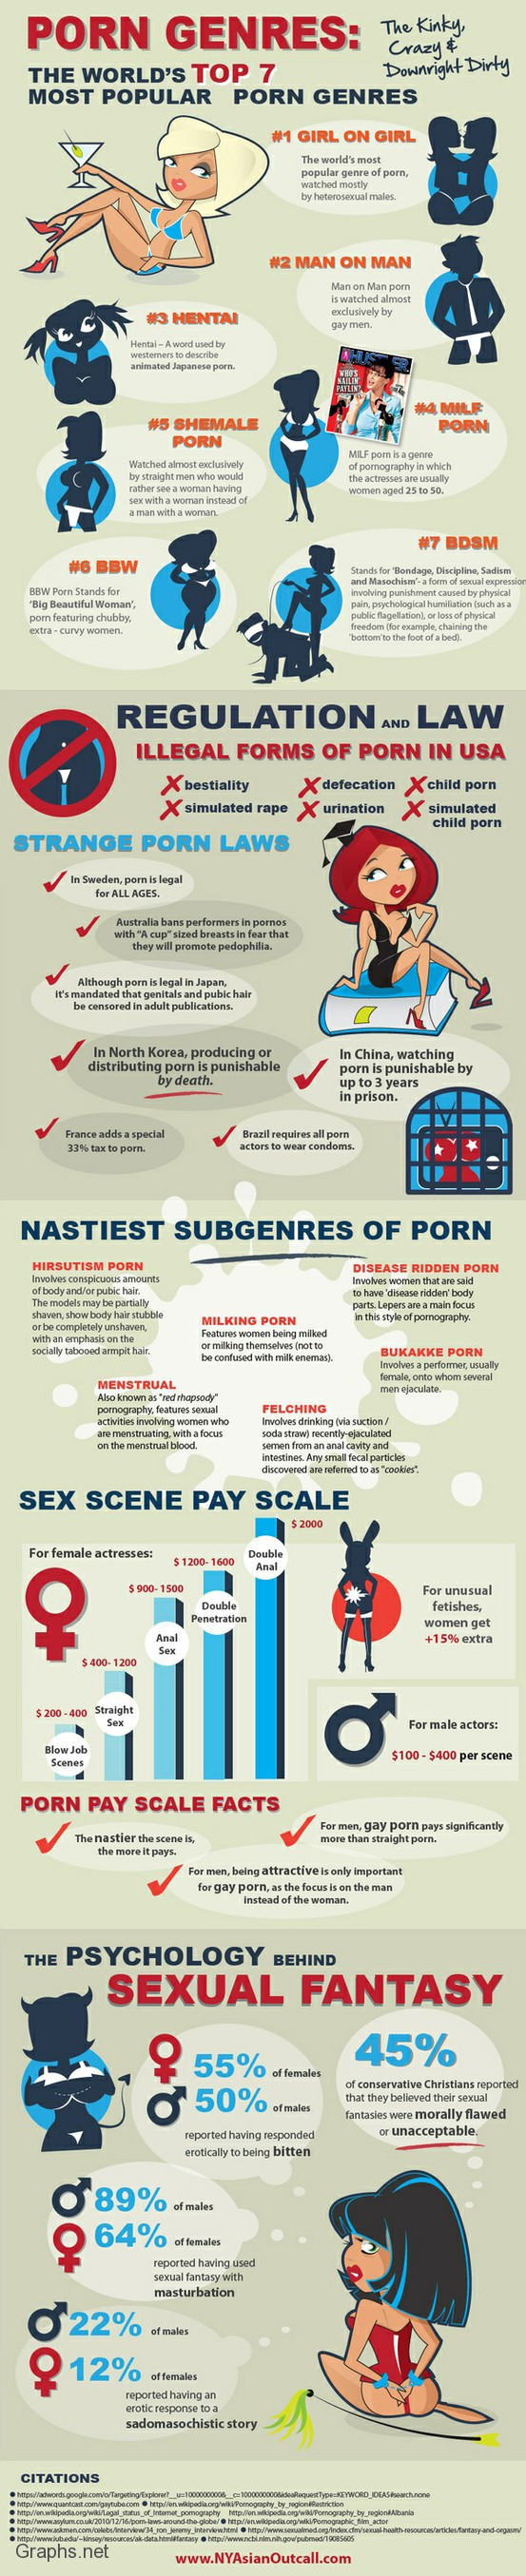 7 Most Popular Porn Genres